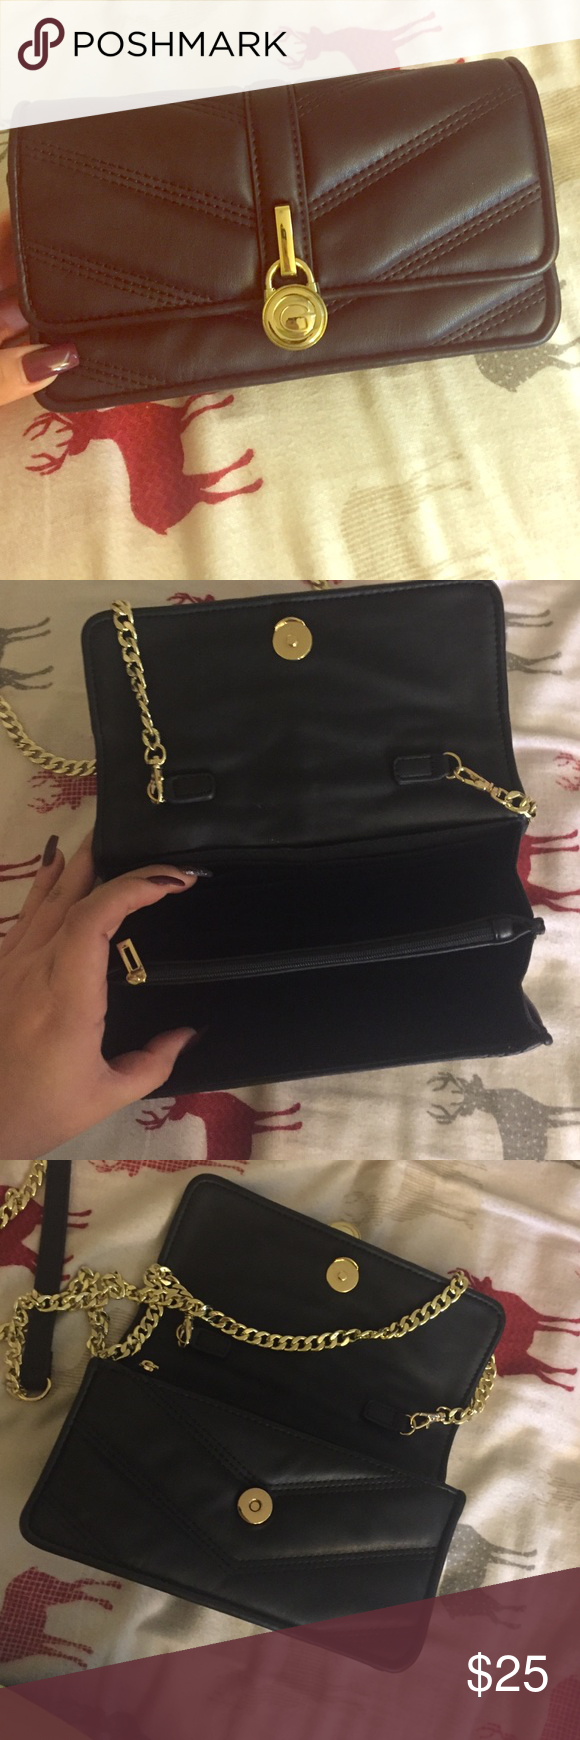 Guess purse Guess black small purse great condition. G by Guess Bags Crossbody Bags